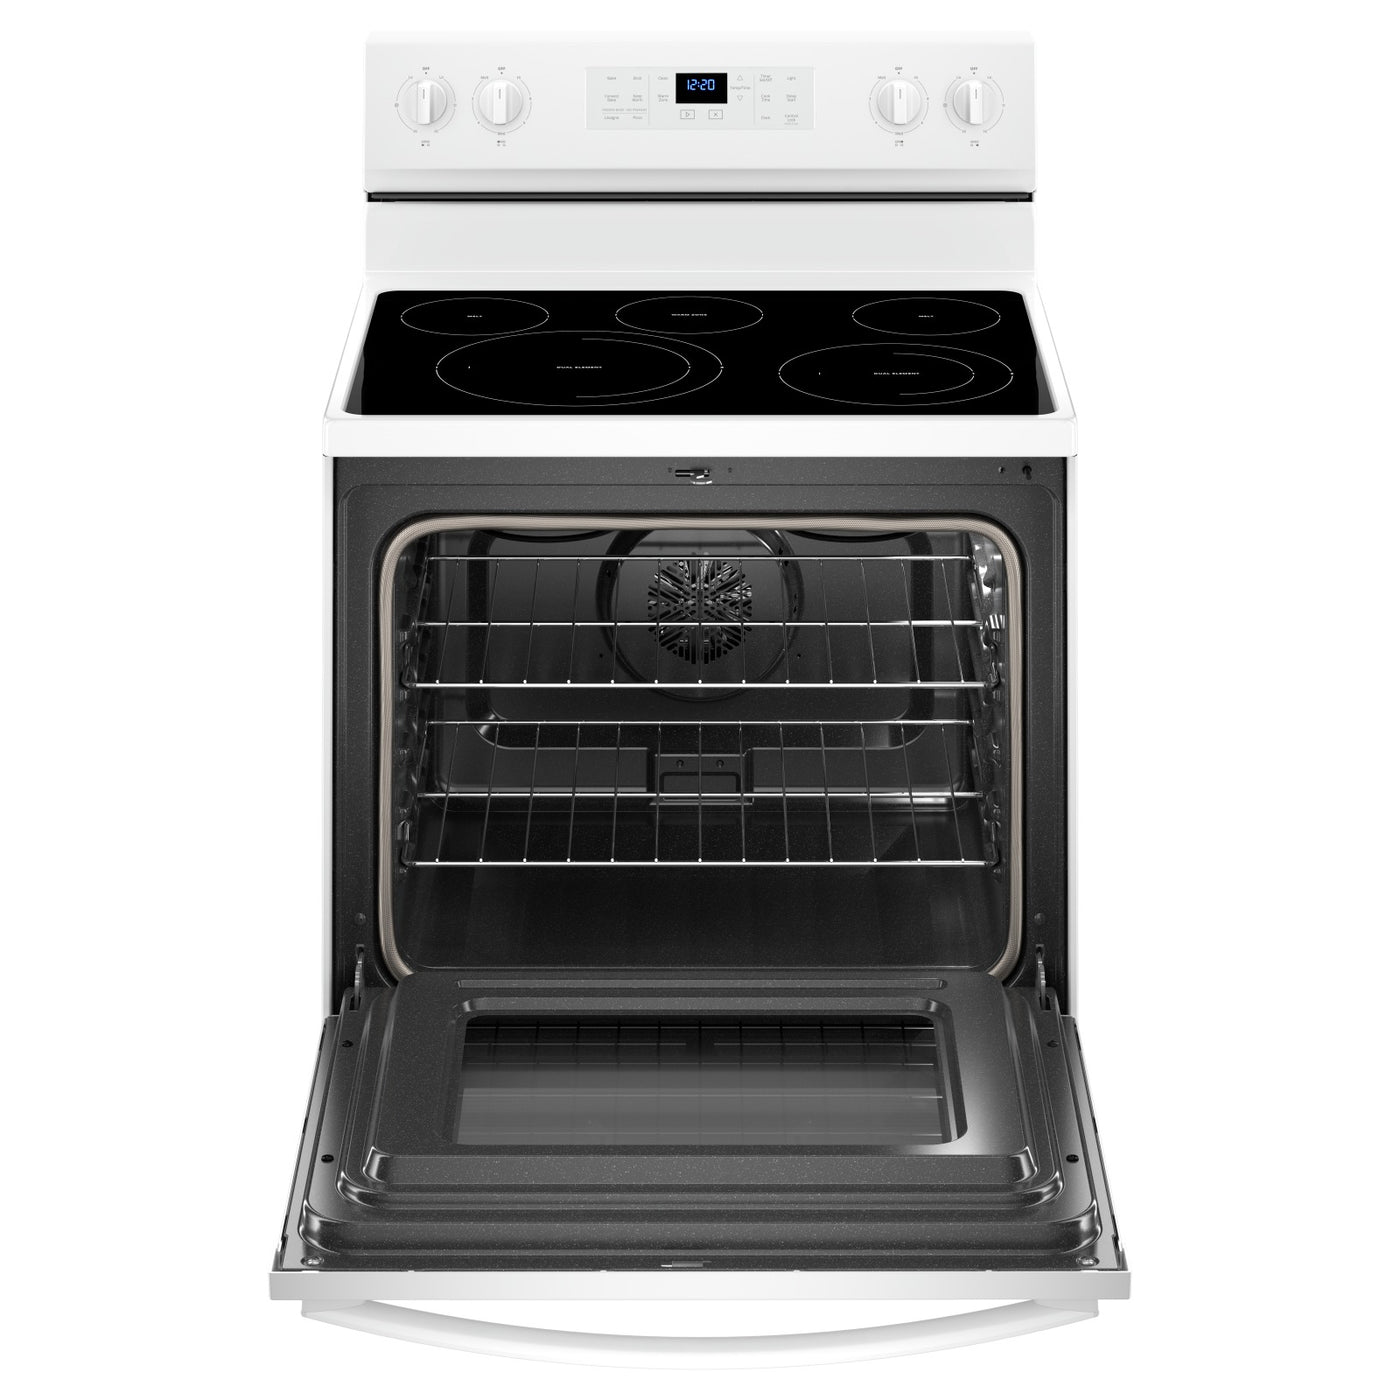 Whirlpool® 5 3 Cu  Ft  Freestanding Electric Range with Fan Convection  Cooking